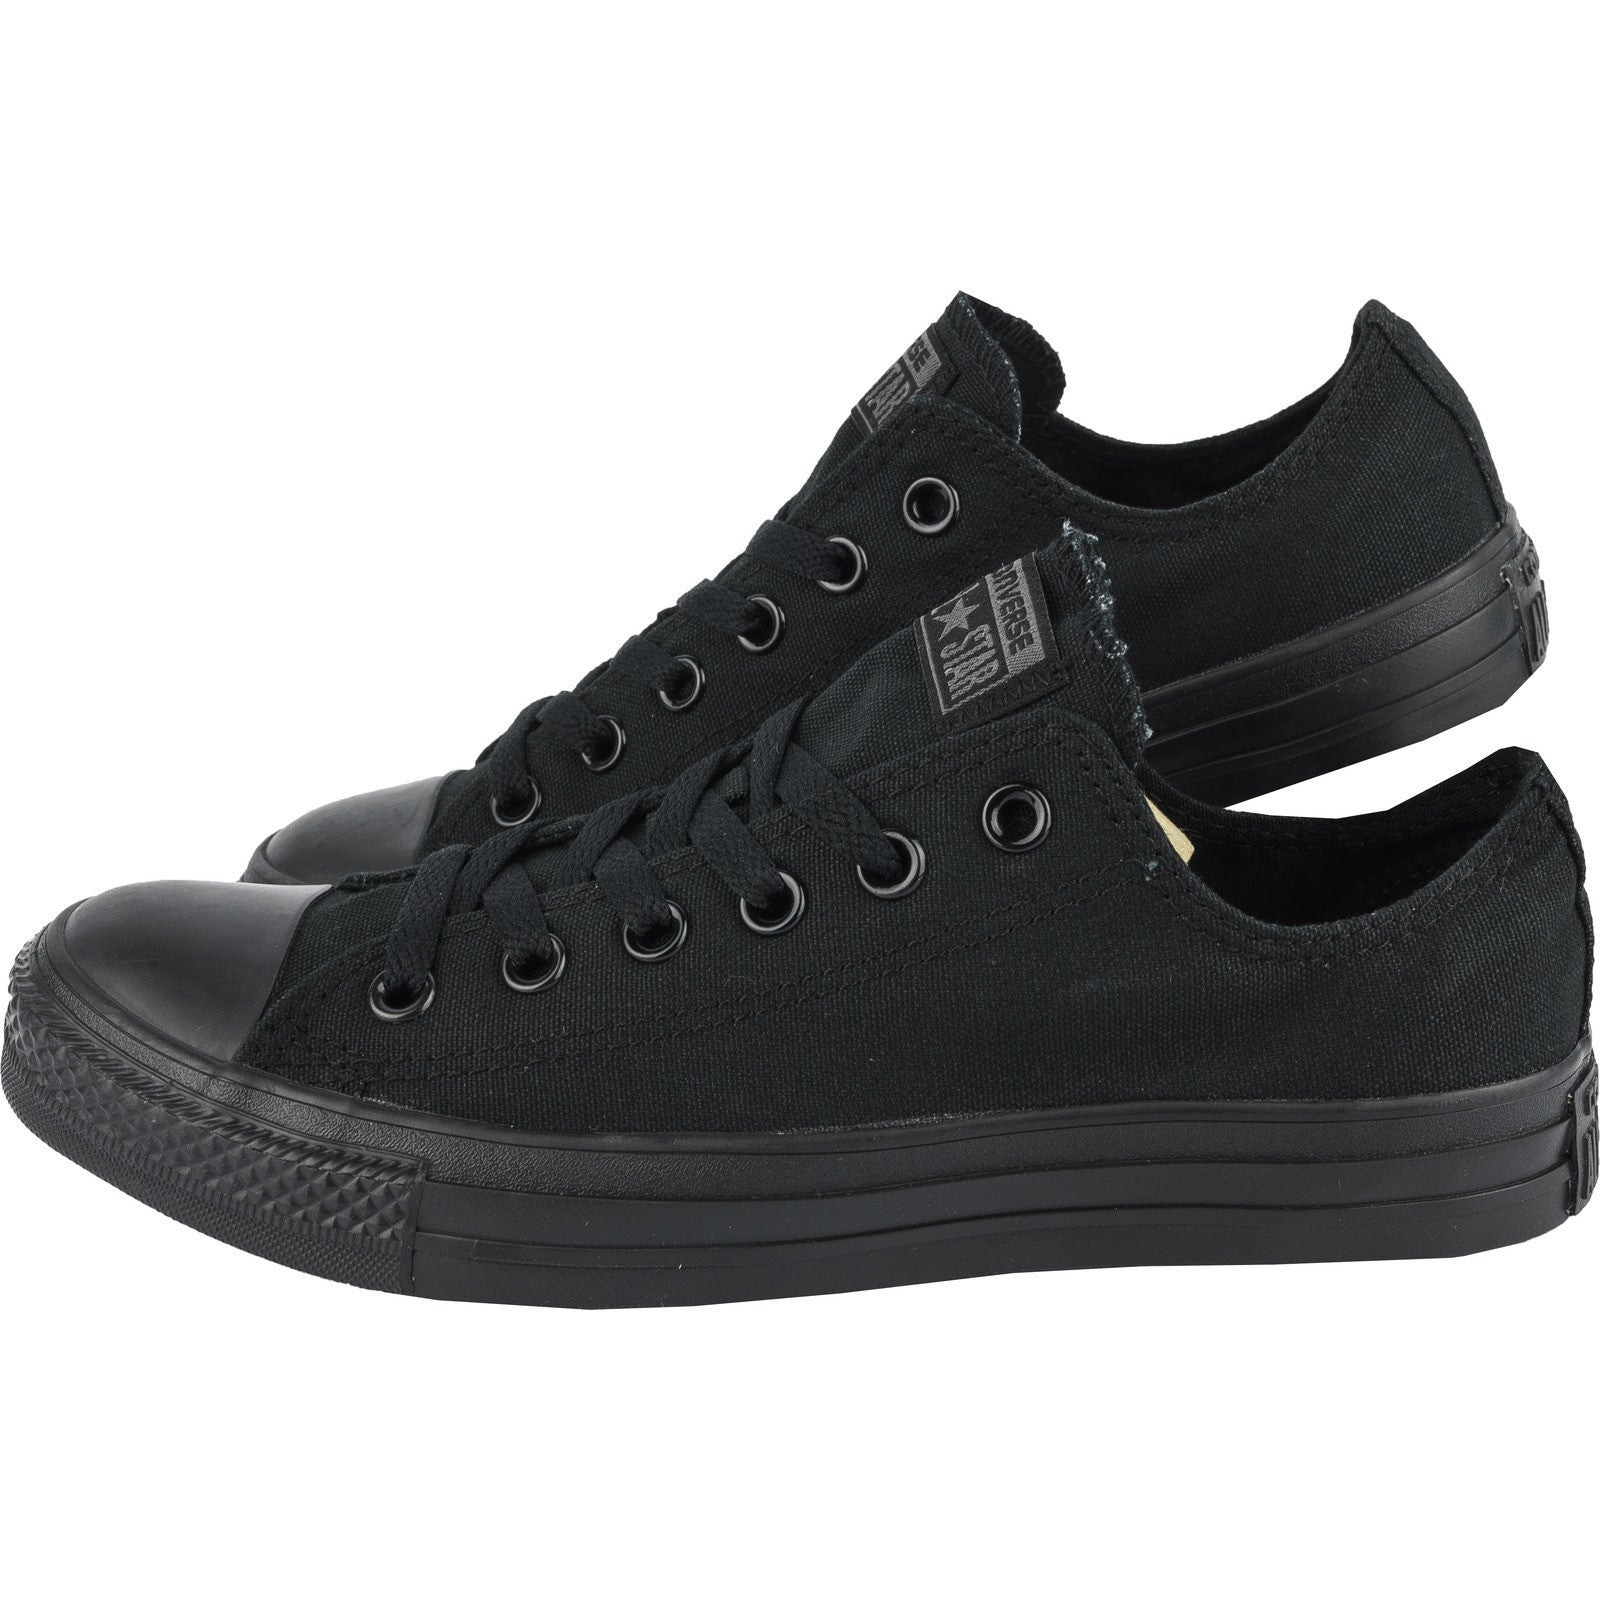 Converse Classic Chuck Taylor All Star All Black Monochrome Low M5039C  Sneaker Men Women ... 5dd797767